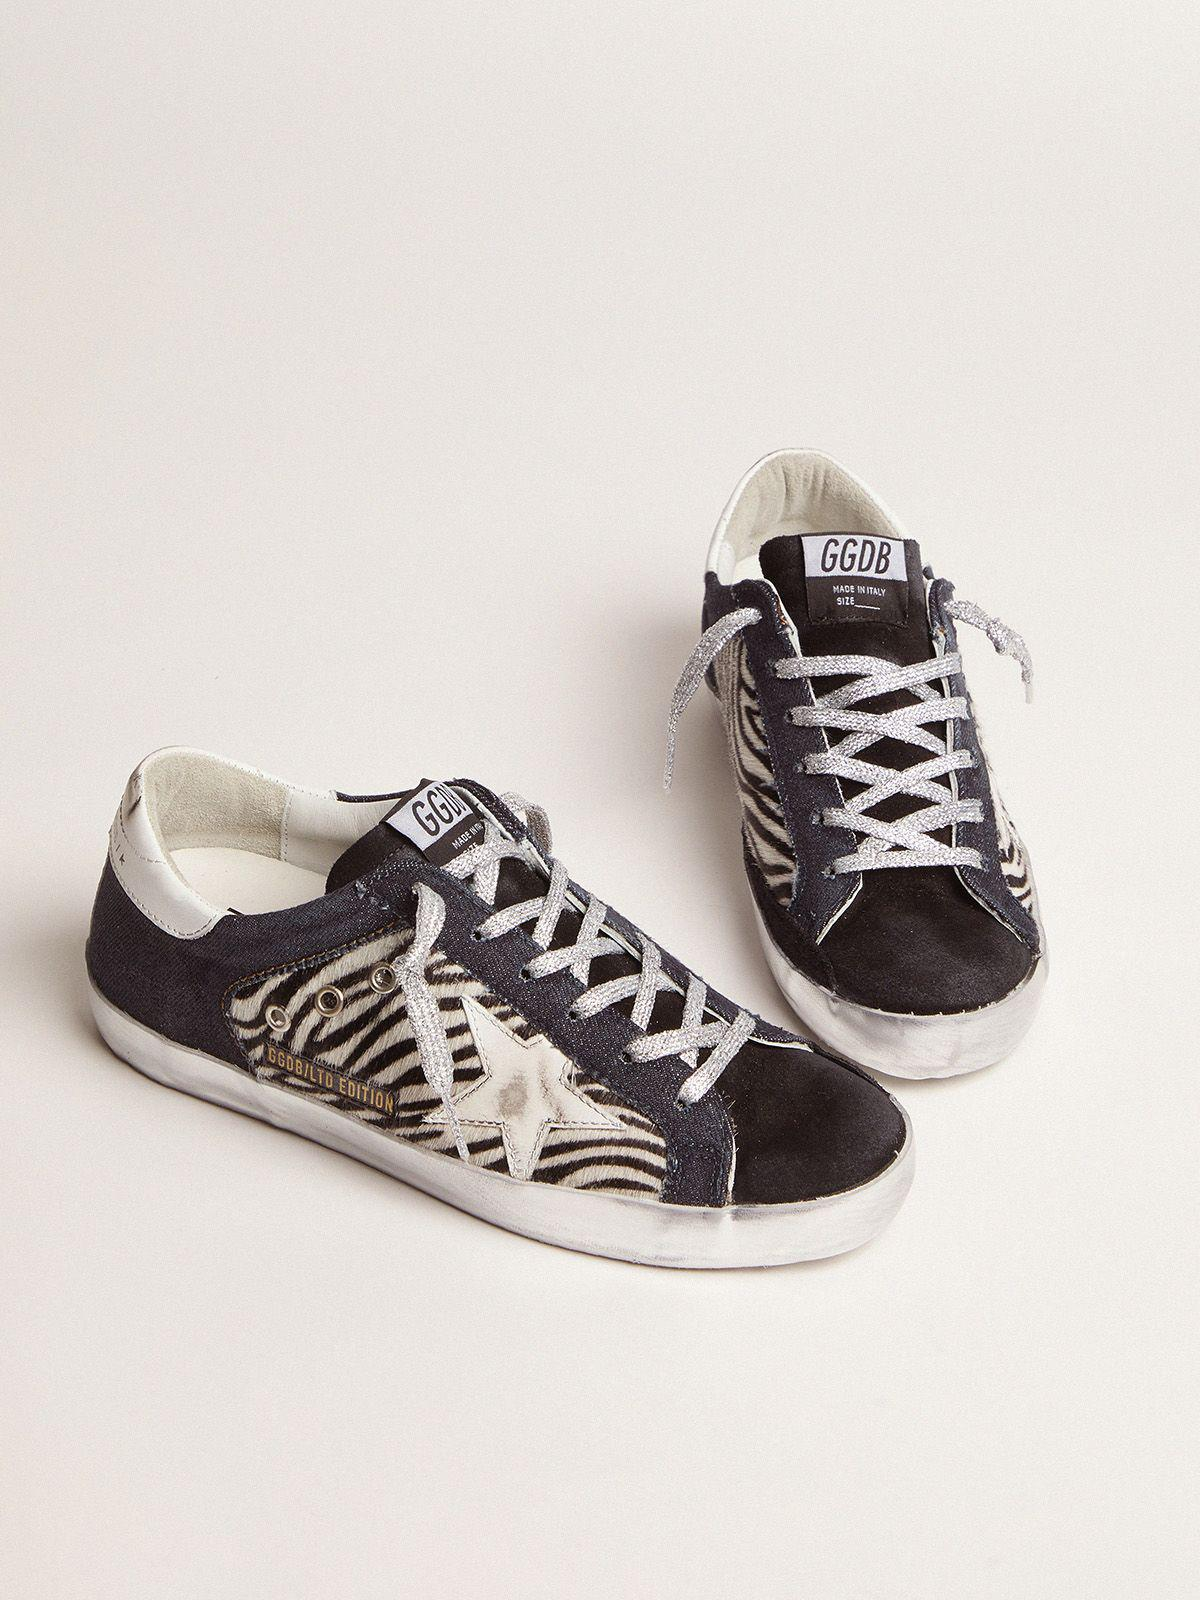 LAB Limited Edition Super-Star sneakers in denim, zebra-print pony skin and suede 1